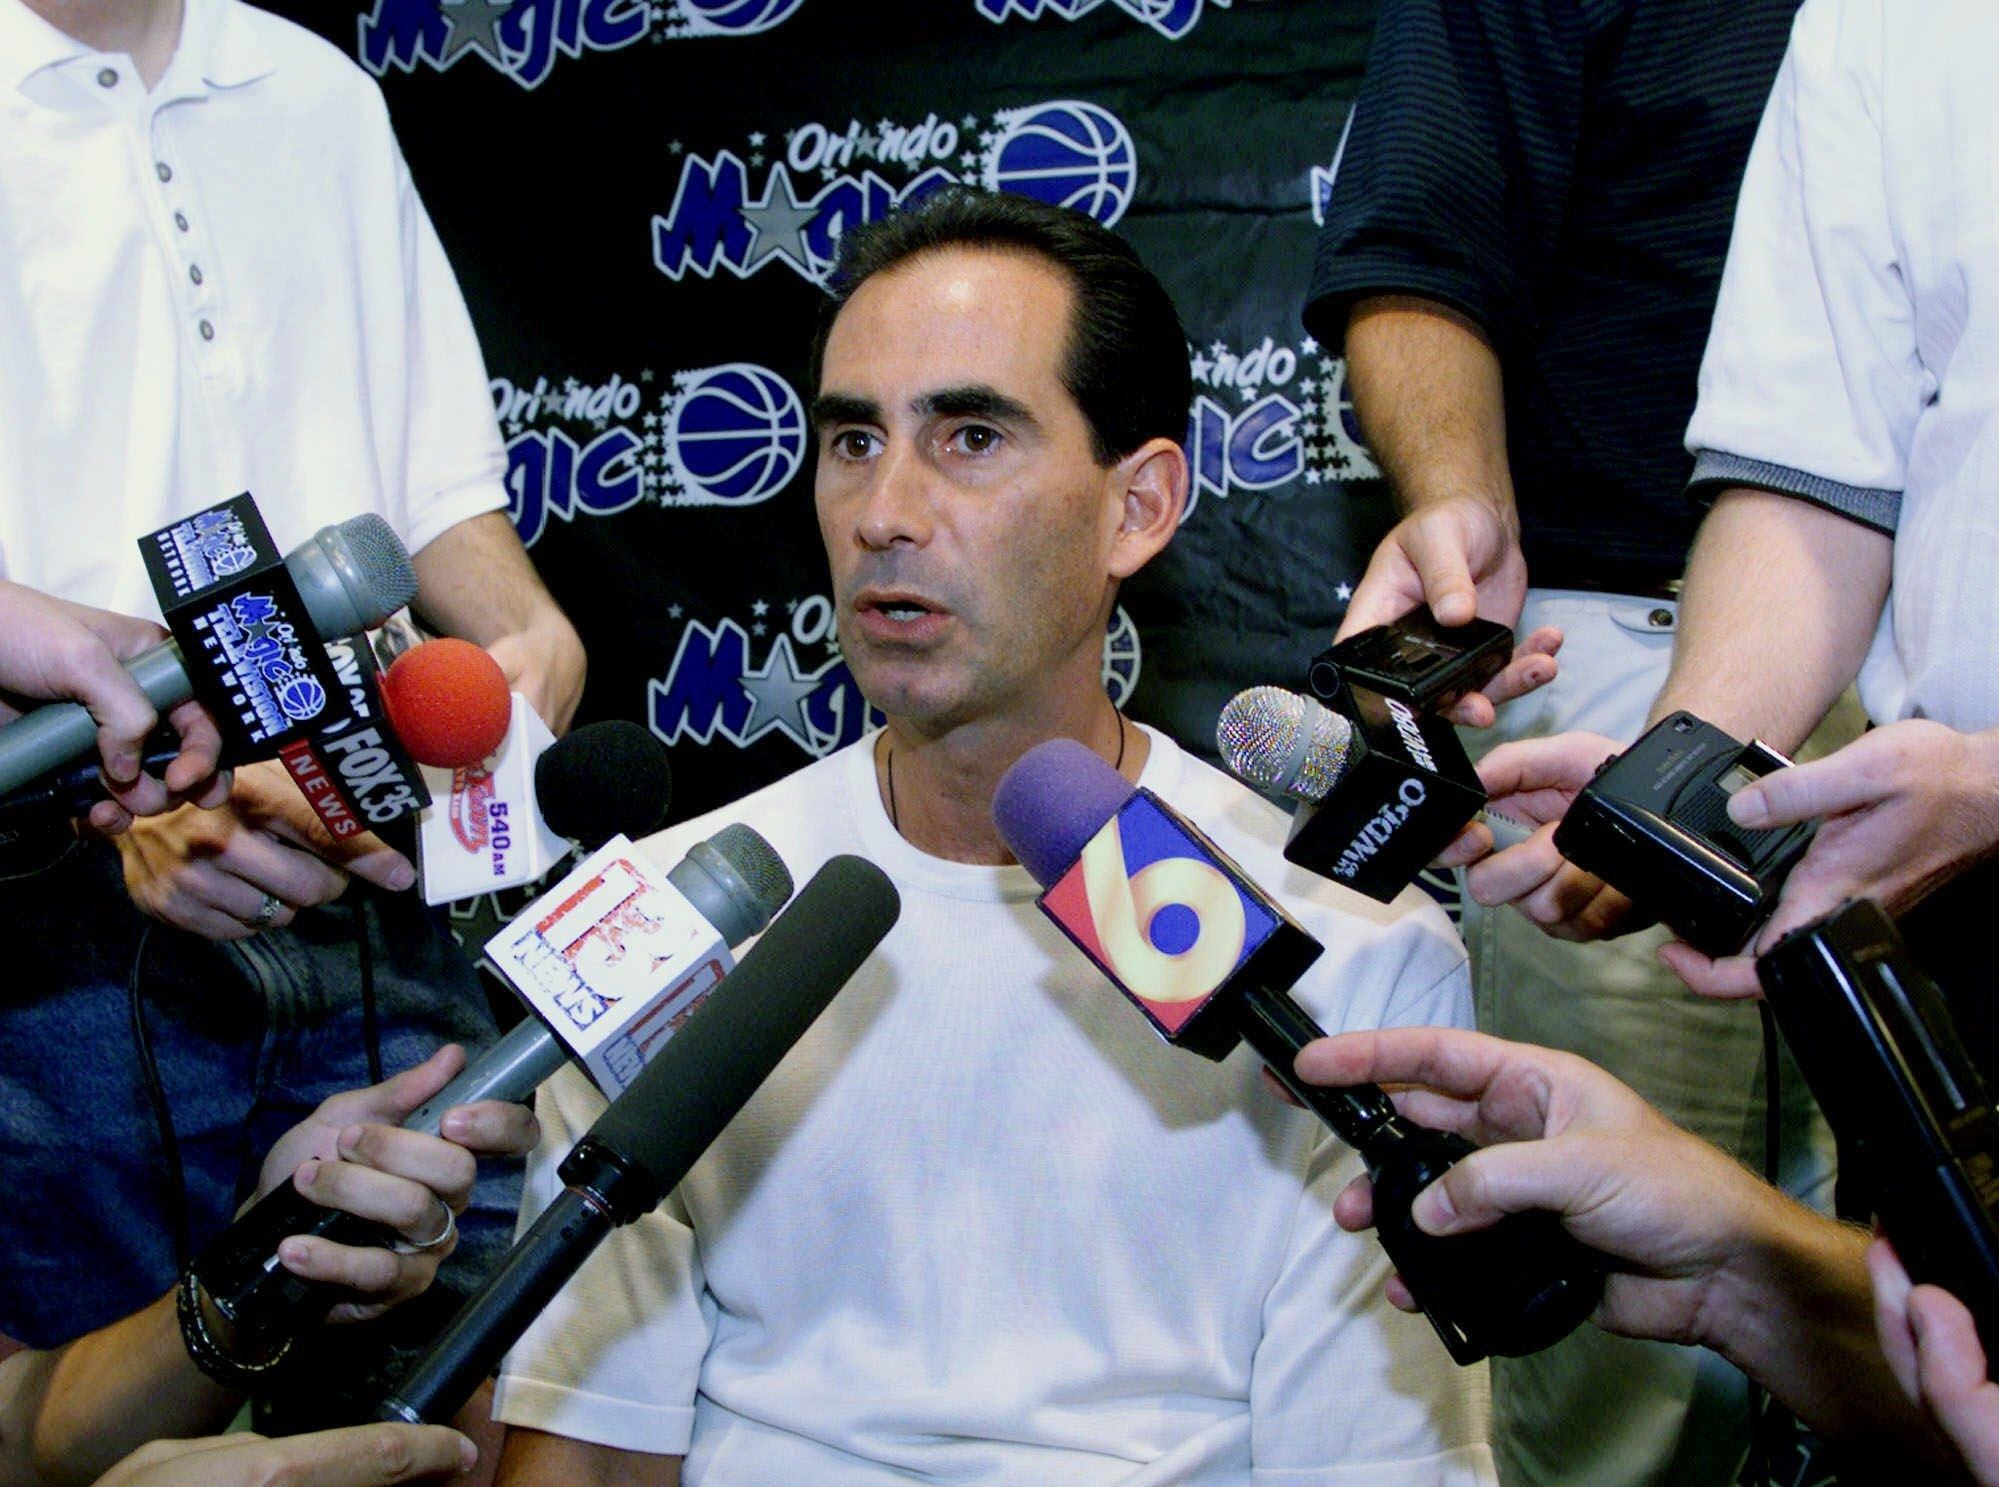 Orlando Magic's General Manager John Gabriel is surrounded by reporters at the Magic practice facility in Orlando, Fla. Tuesday, Aug. 3, 1999.